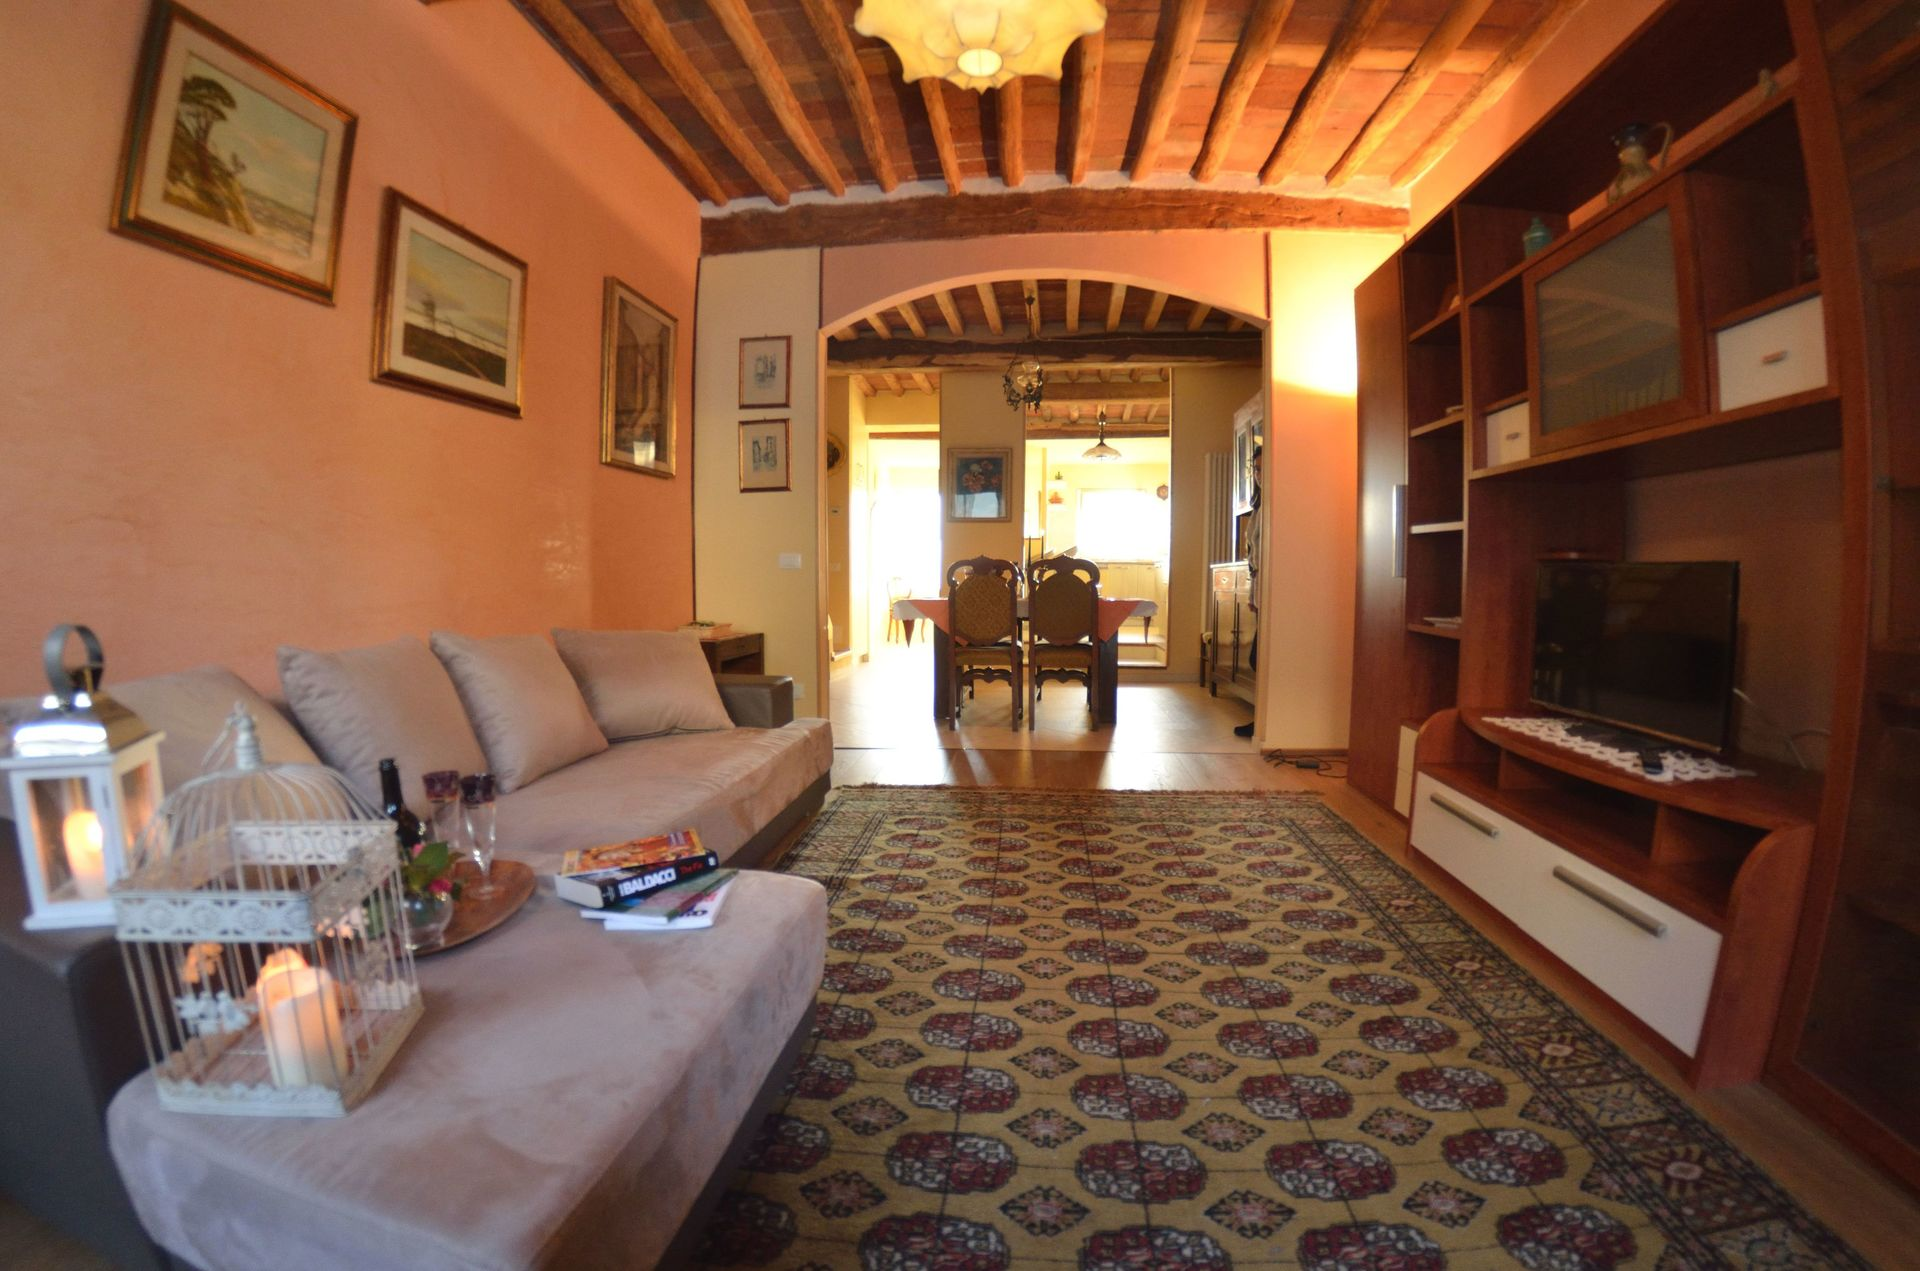 Guest House Soggiorno Monaco Firenze Lucca Villa Vacation Rental San Michele That Sleeps 7 People In 3